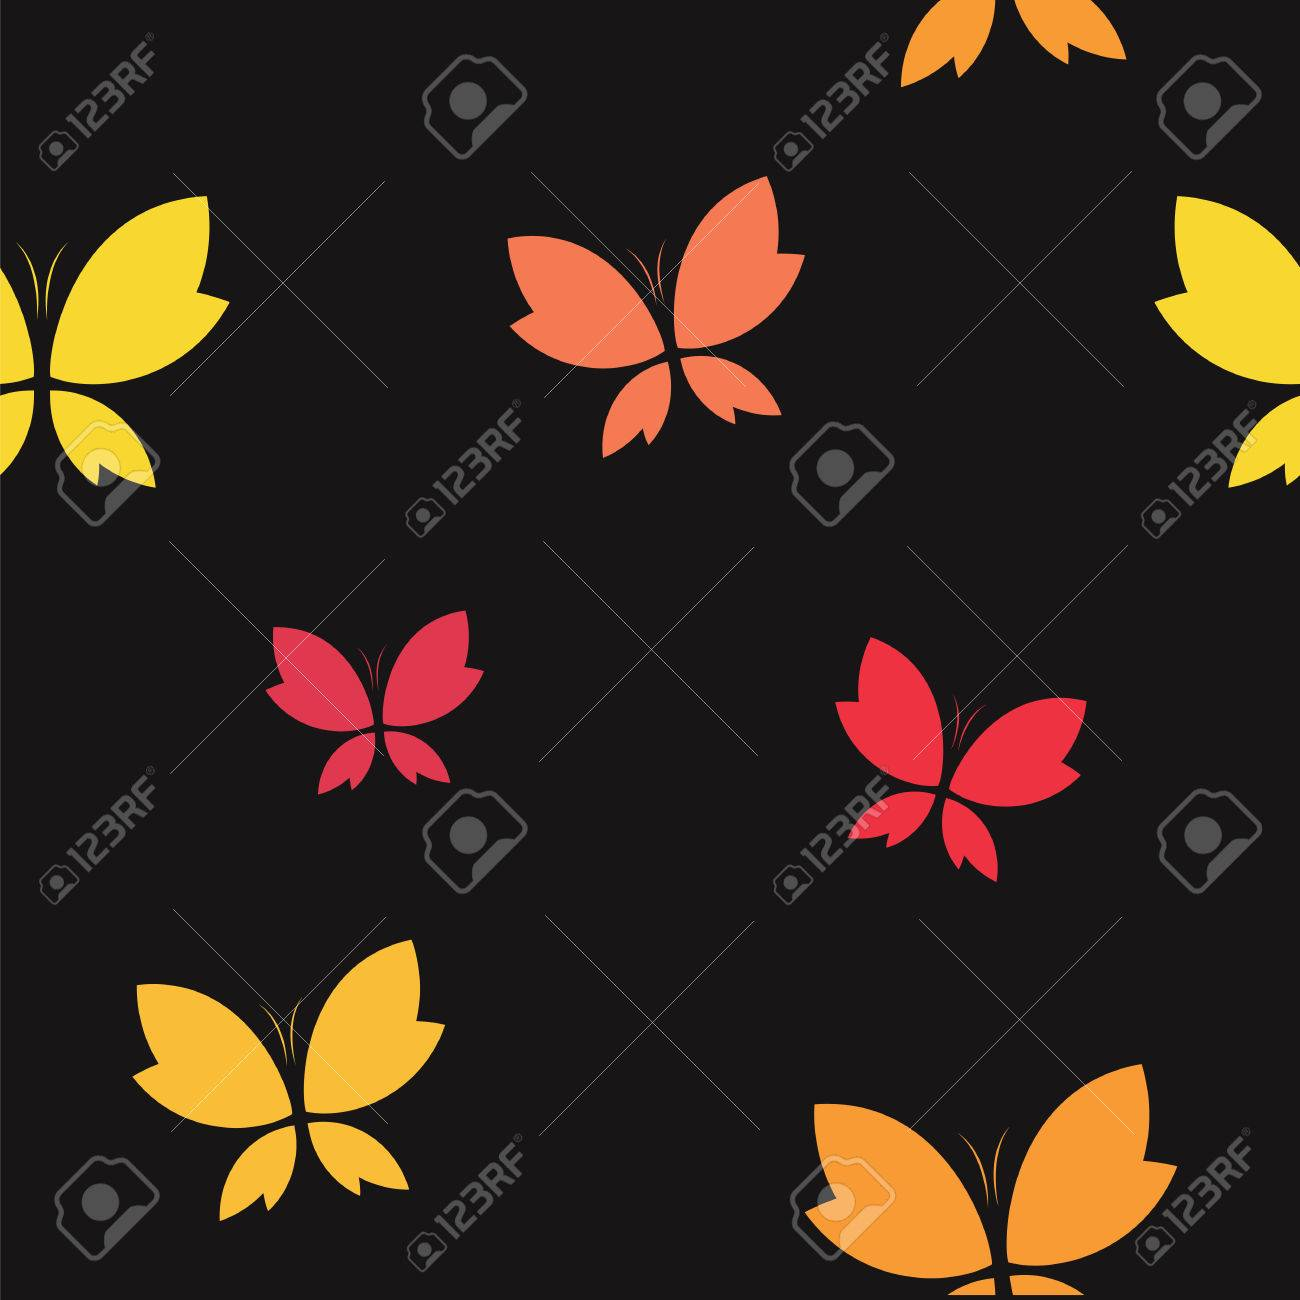 Vector Seamless Pattern With Butterfly On Black Background Wallpaper Royalty Free Cliparts Vectors And Stock Illustration Image 49897036